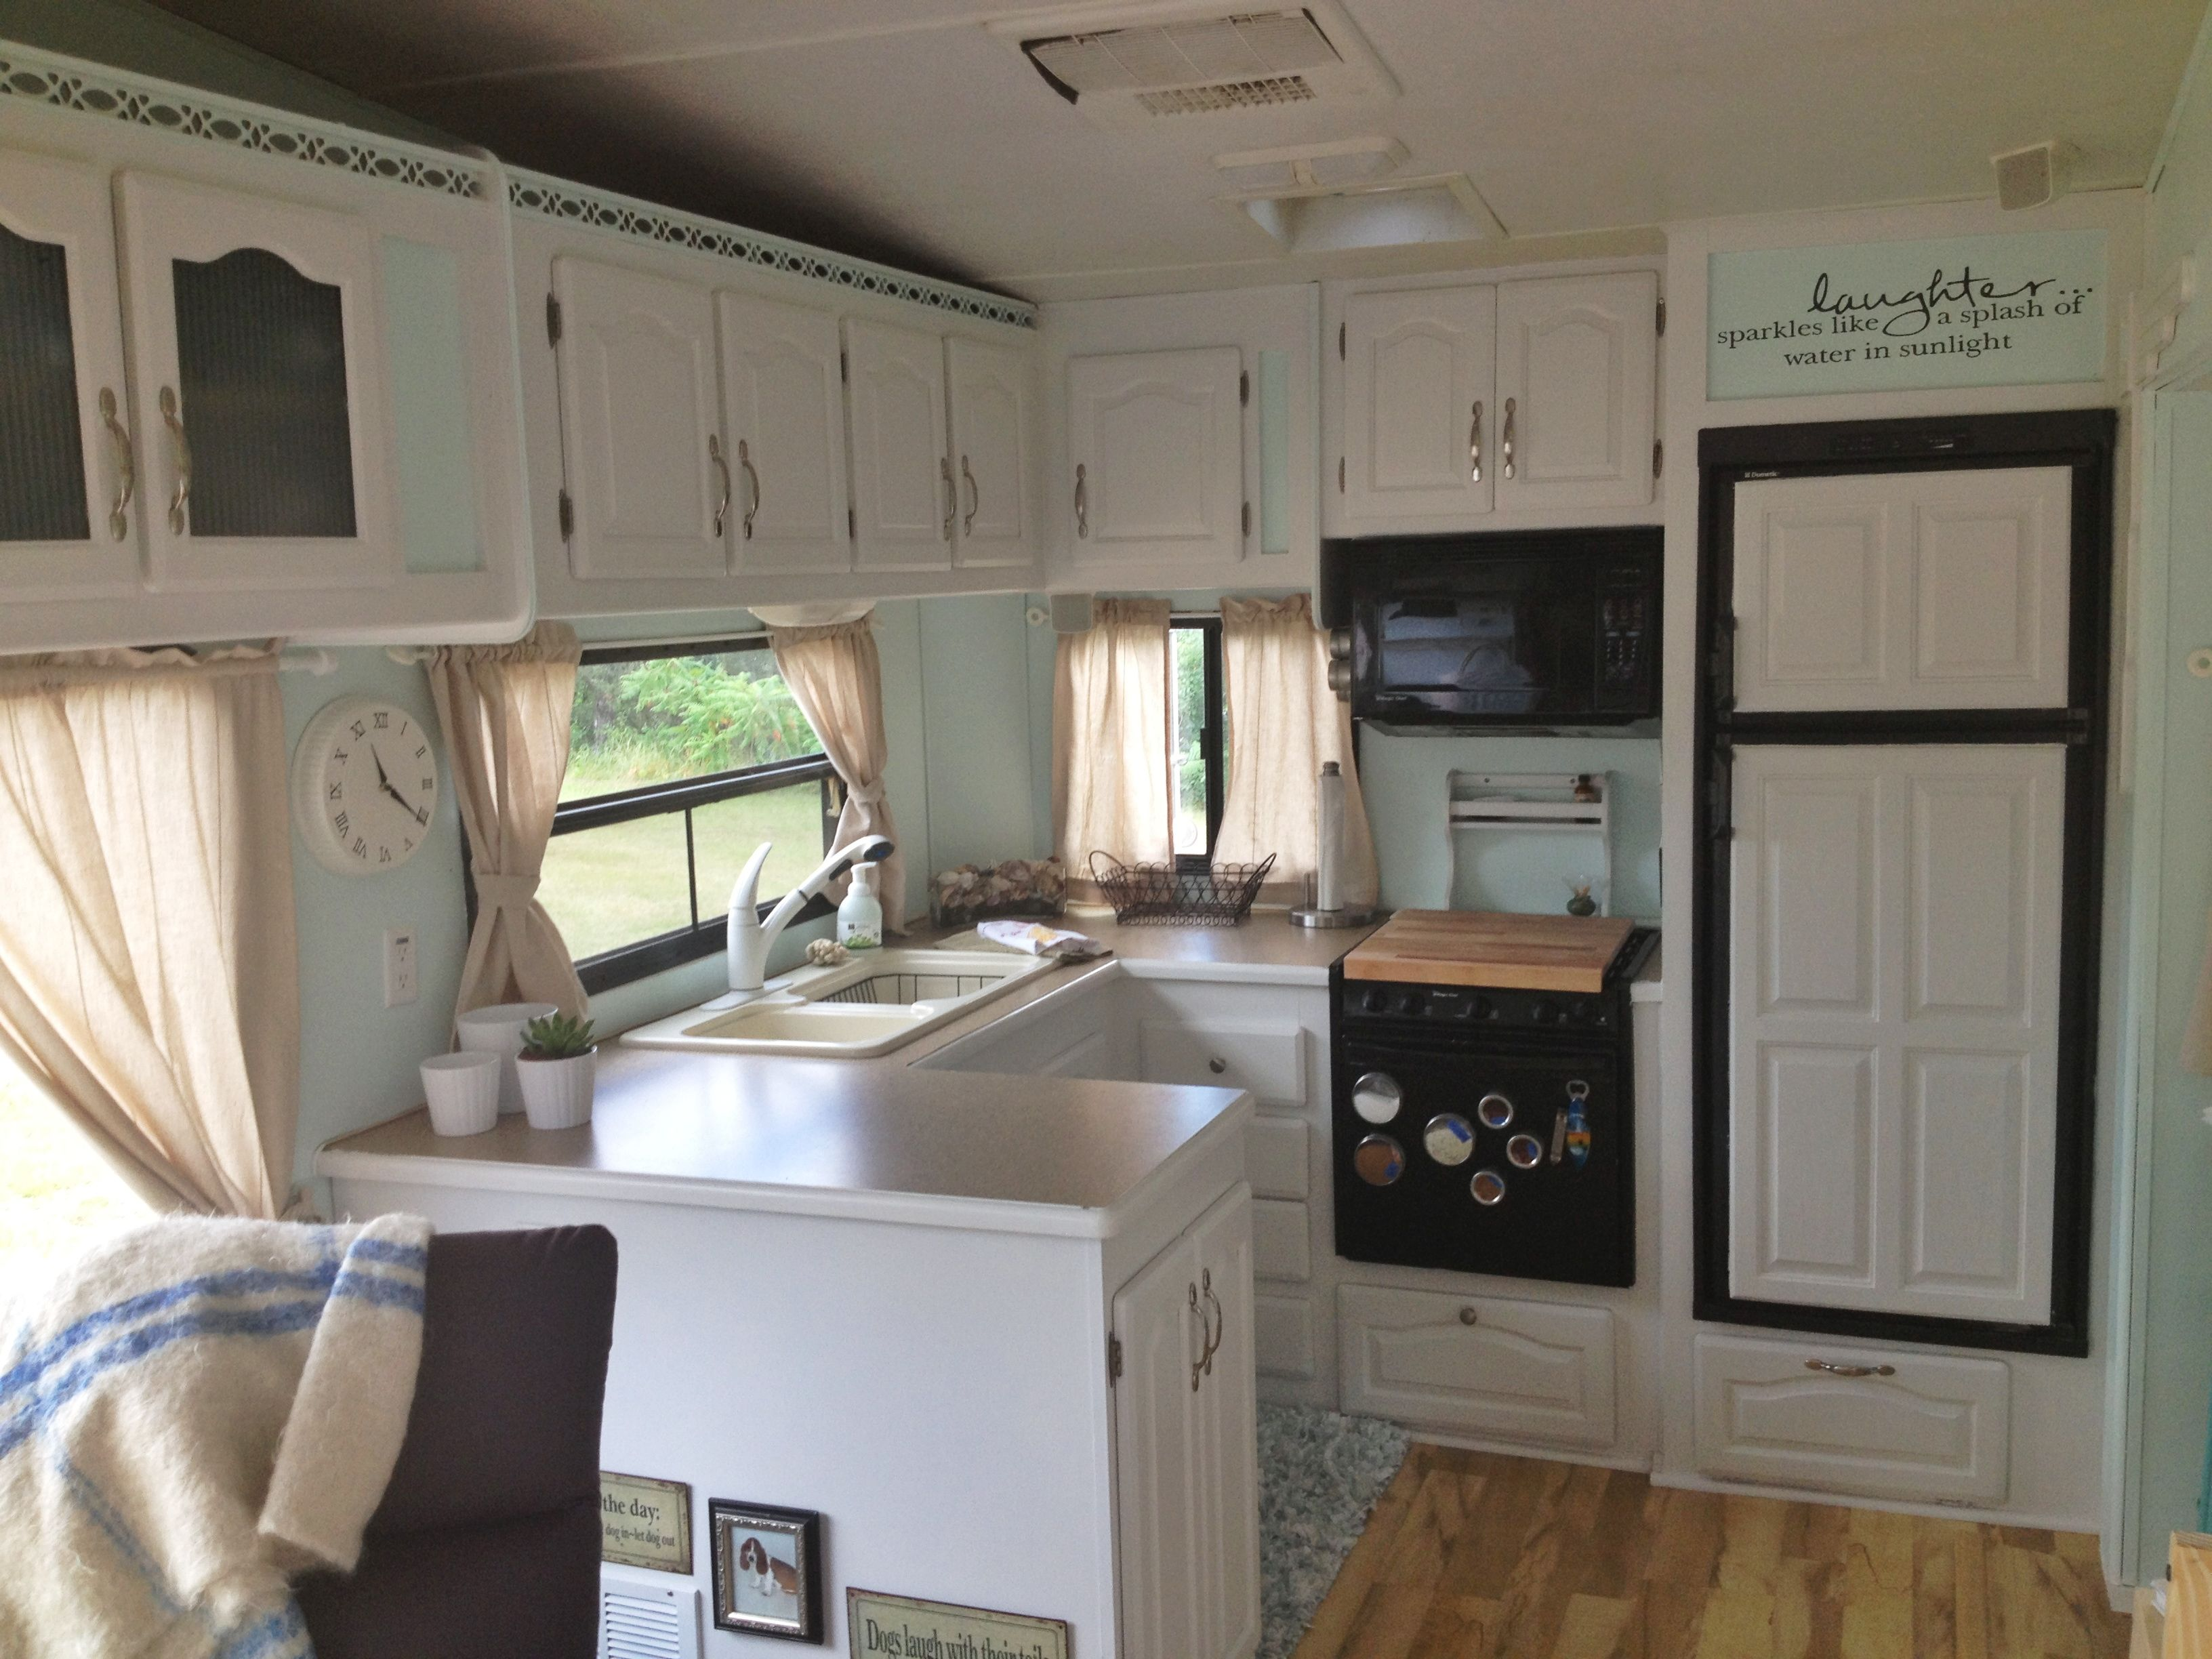 Camper Interior Remodel DIY Travel Trailers   Just About All Travel Trailers  Utilize Wood Veneer. This Will Go Quite A Way To Giving Your Family Campe.